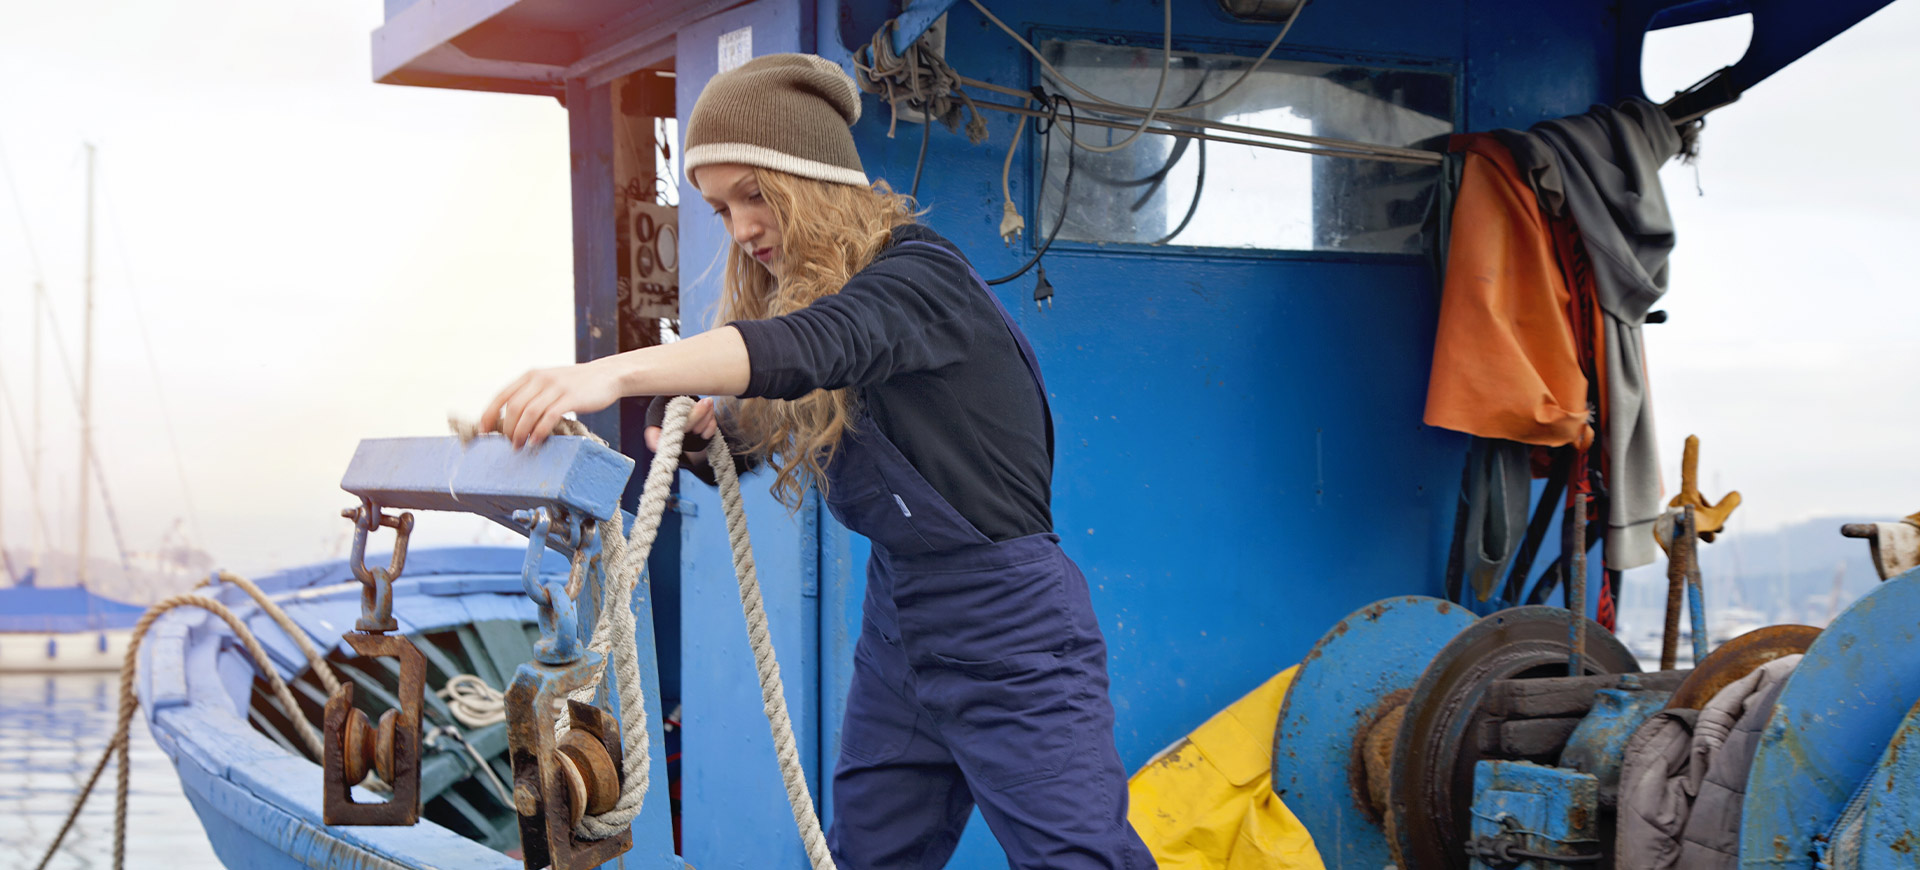 How We Choose to Challenge Gender Inequality in the Fishing Industry